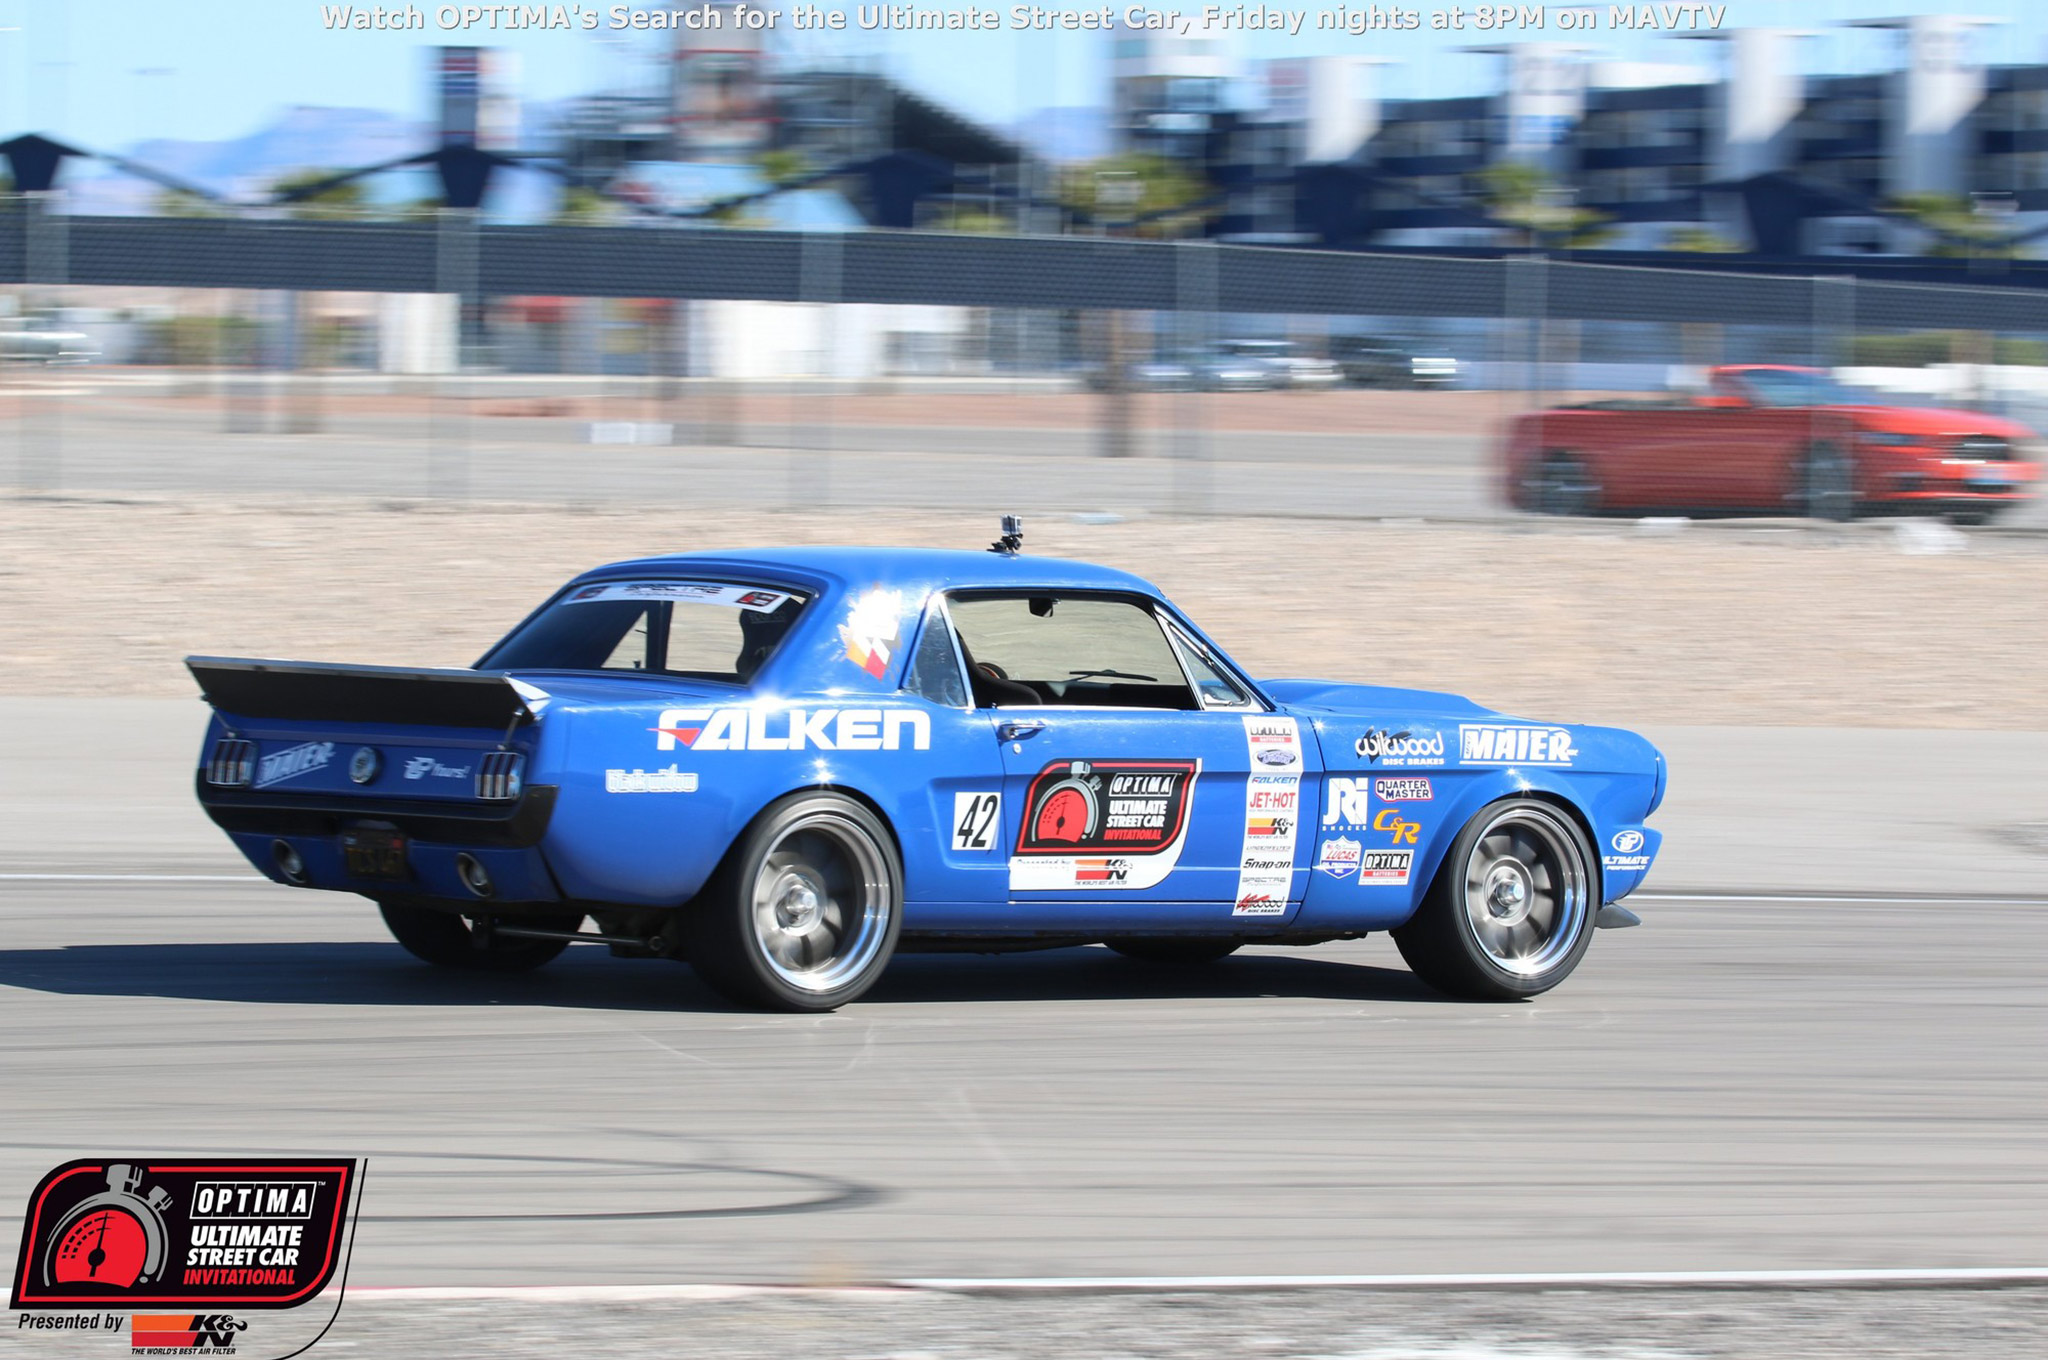 Mike Maier's '66 Mustang was the top Ford in the field, finishing 12th overall. His performance underscores how tough this field is, as he bettered his time on the Falken Tire Road Course Time Trial by more than 1.5 seconds over 2014, but finished four positions lower than the previous year.